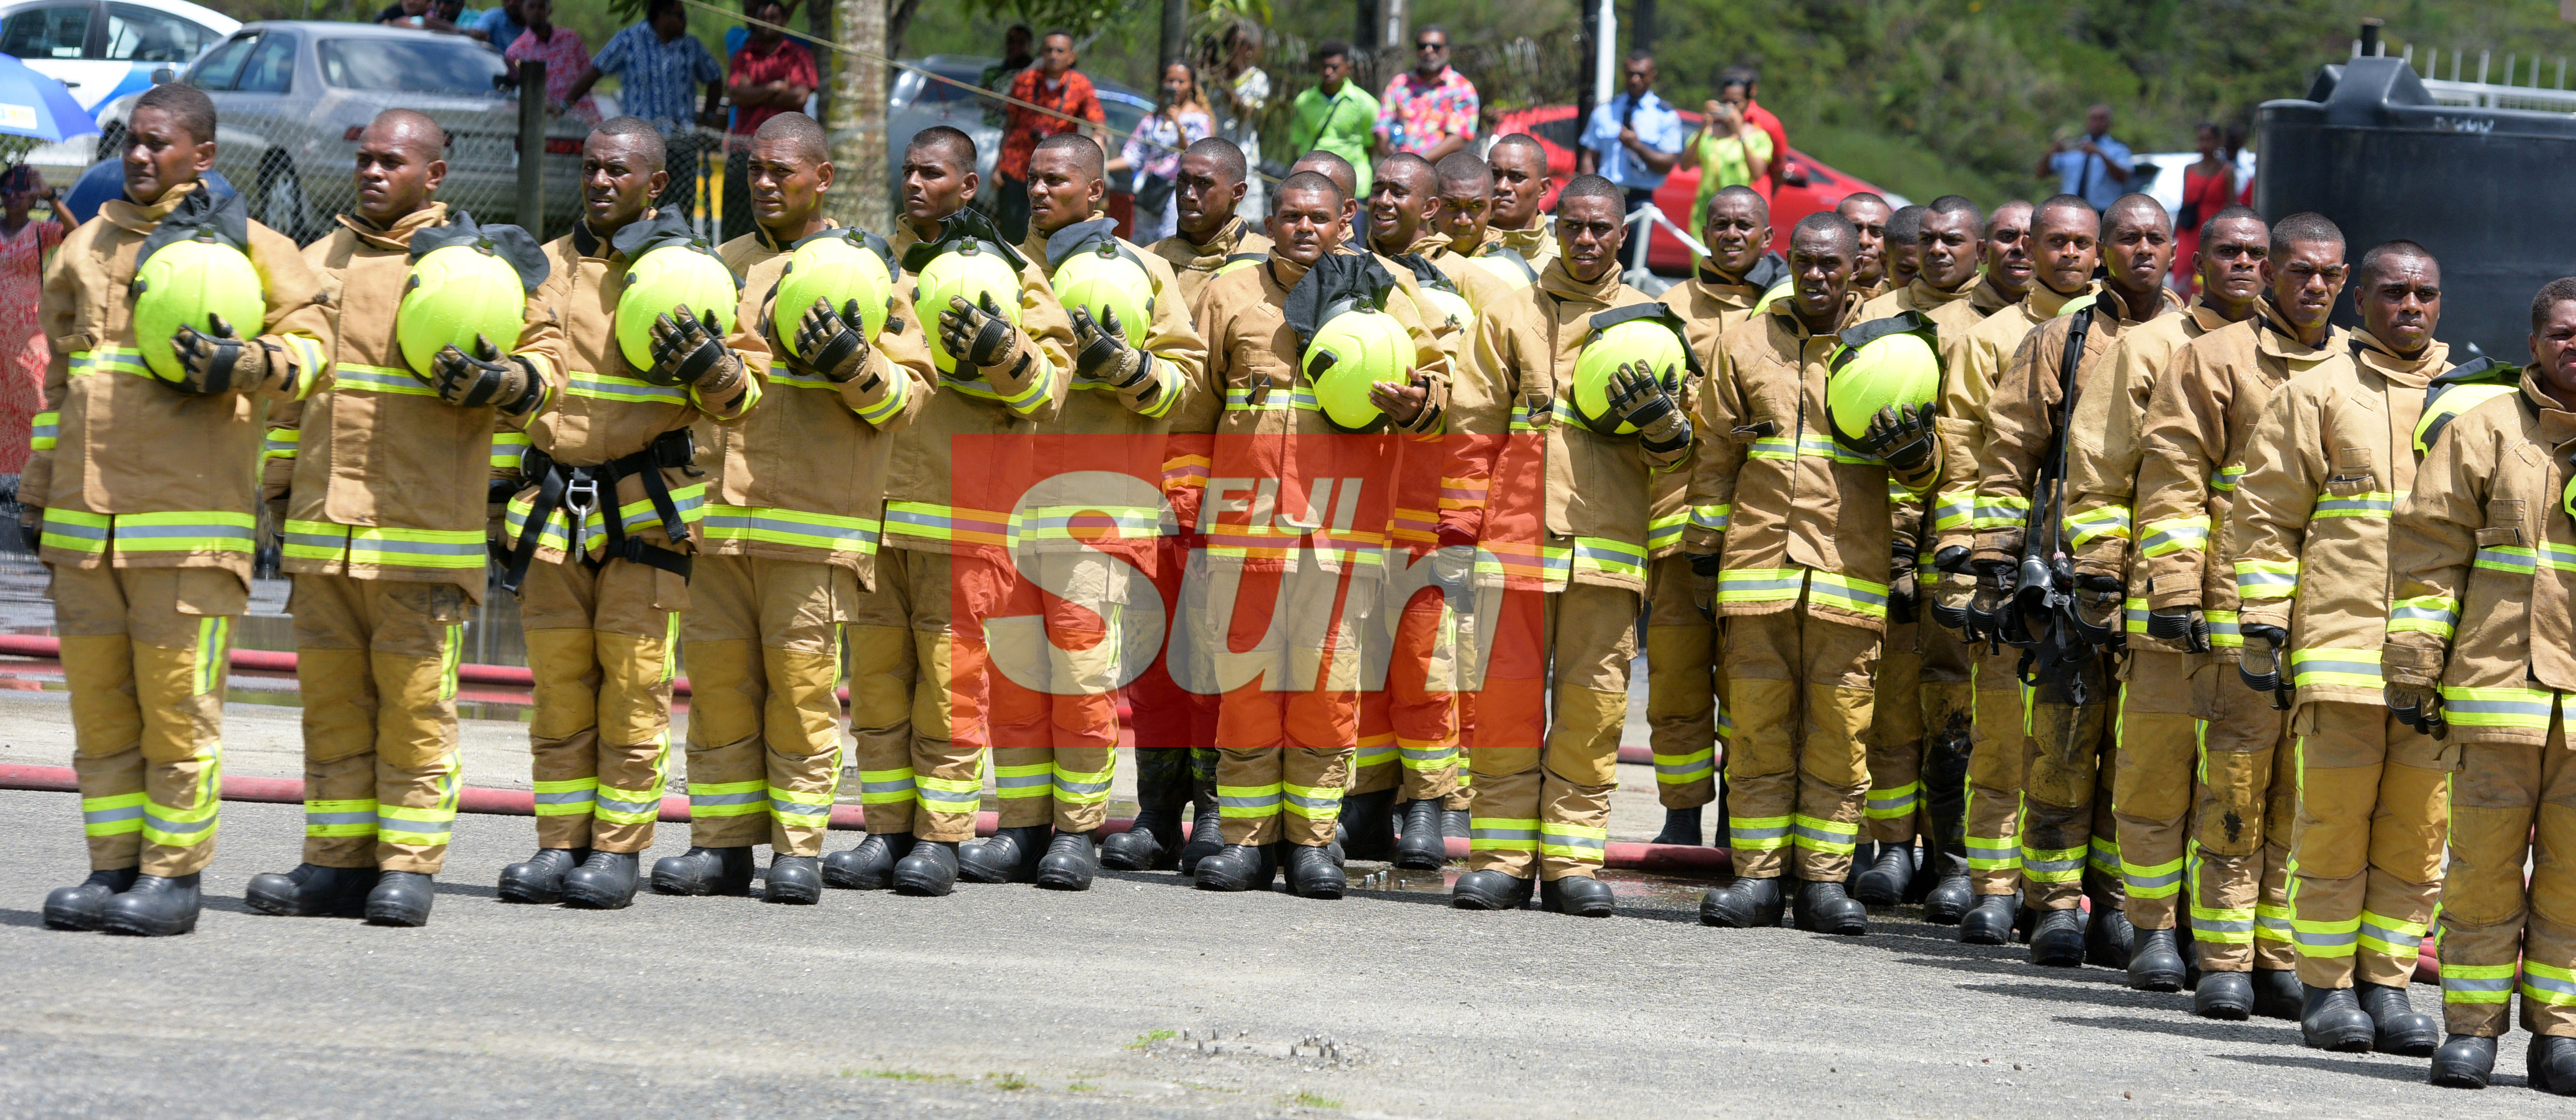 68 new recruits pass out during the National Fire Authority pass out parade from Navy Training base  at Togalevu Veisari, Lami on December 11, 2019. Photo: Ronald Kumar.